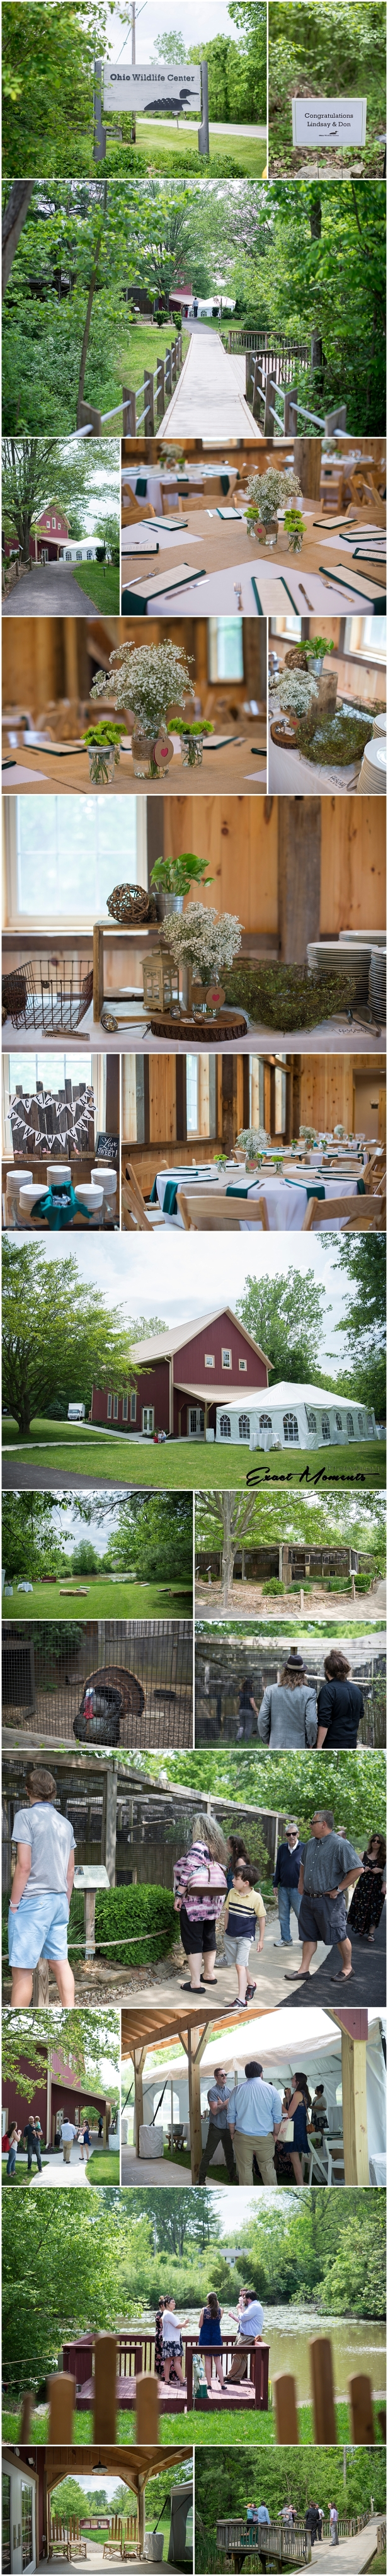 Ohio Wildlife Center Wedding Reception